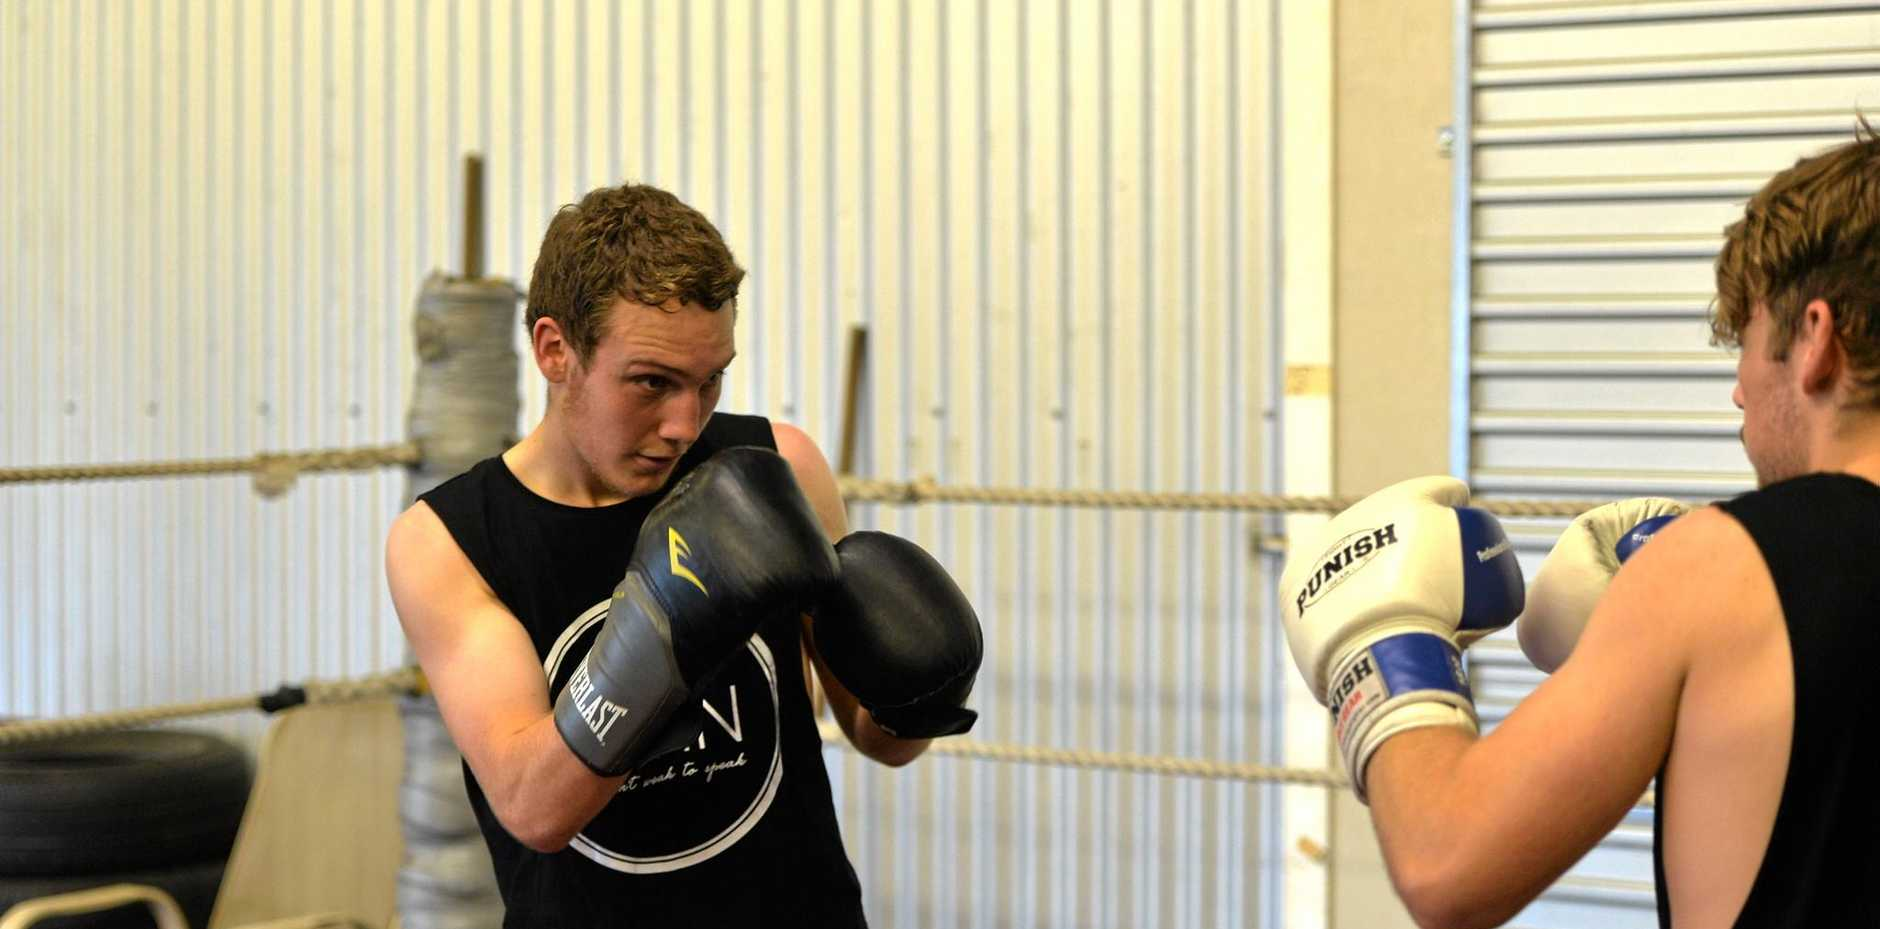 Harrison Duffy is the next big thing according to his coach Shane Smith.